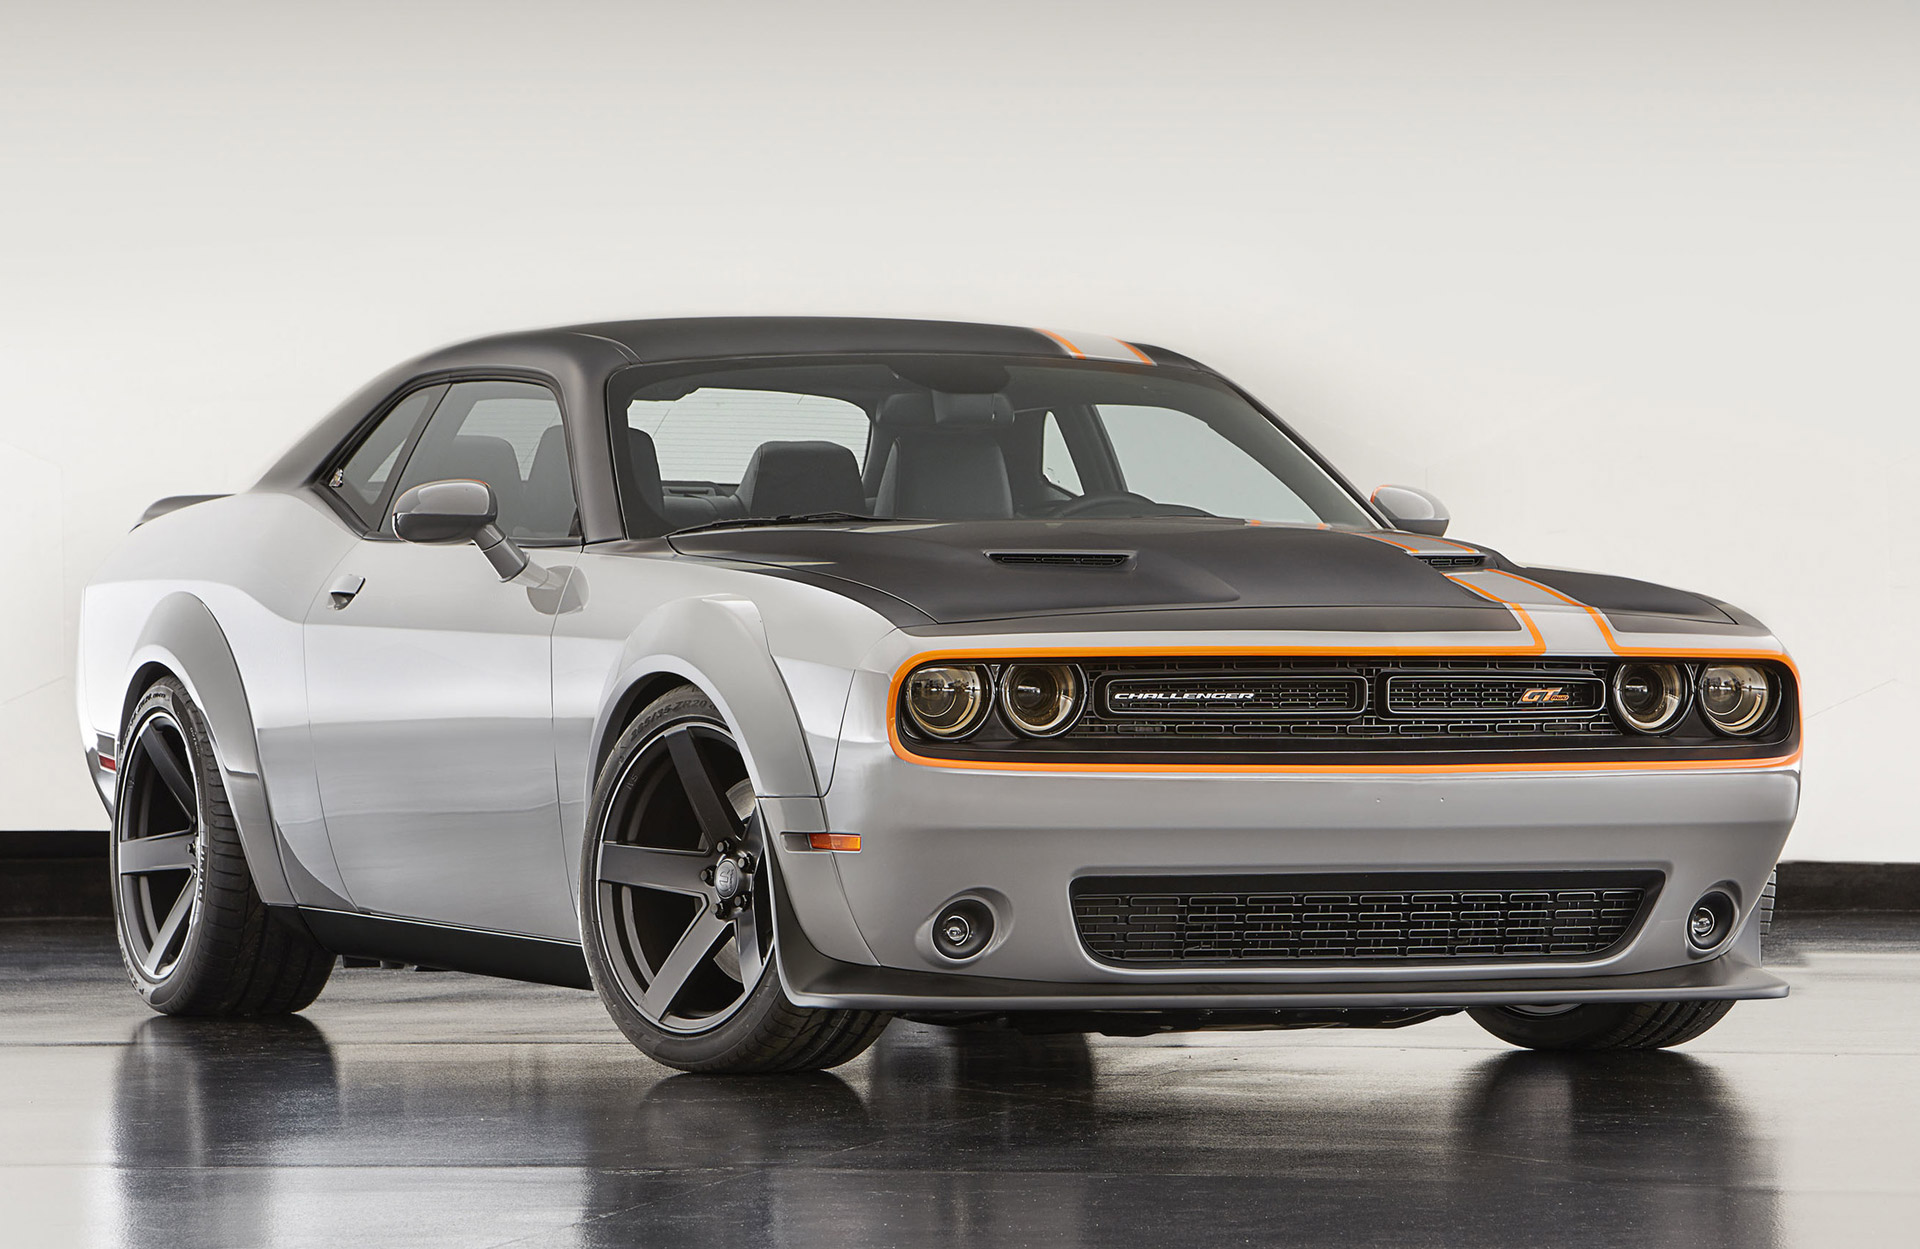 Stirrings At FCA: AWD Challenger And A Special Edition Hellcat (There Is Such A Thing?)